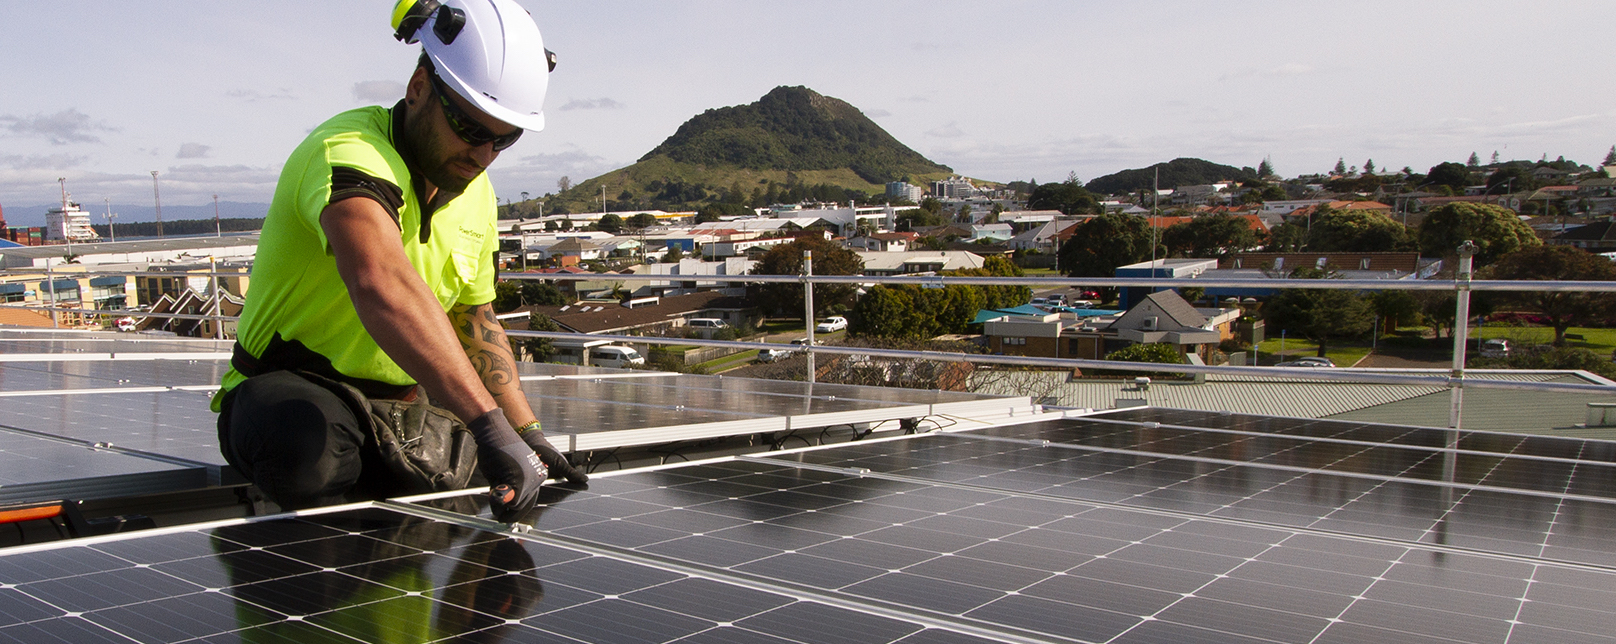 worker installs solar panels on roof of building with Mt Maunganui in the background